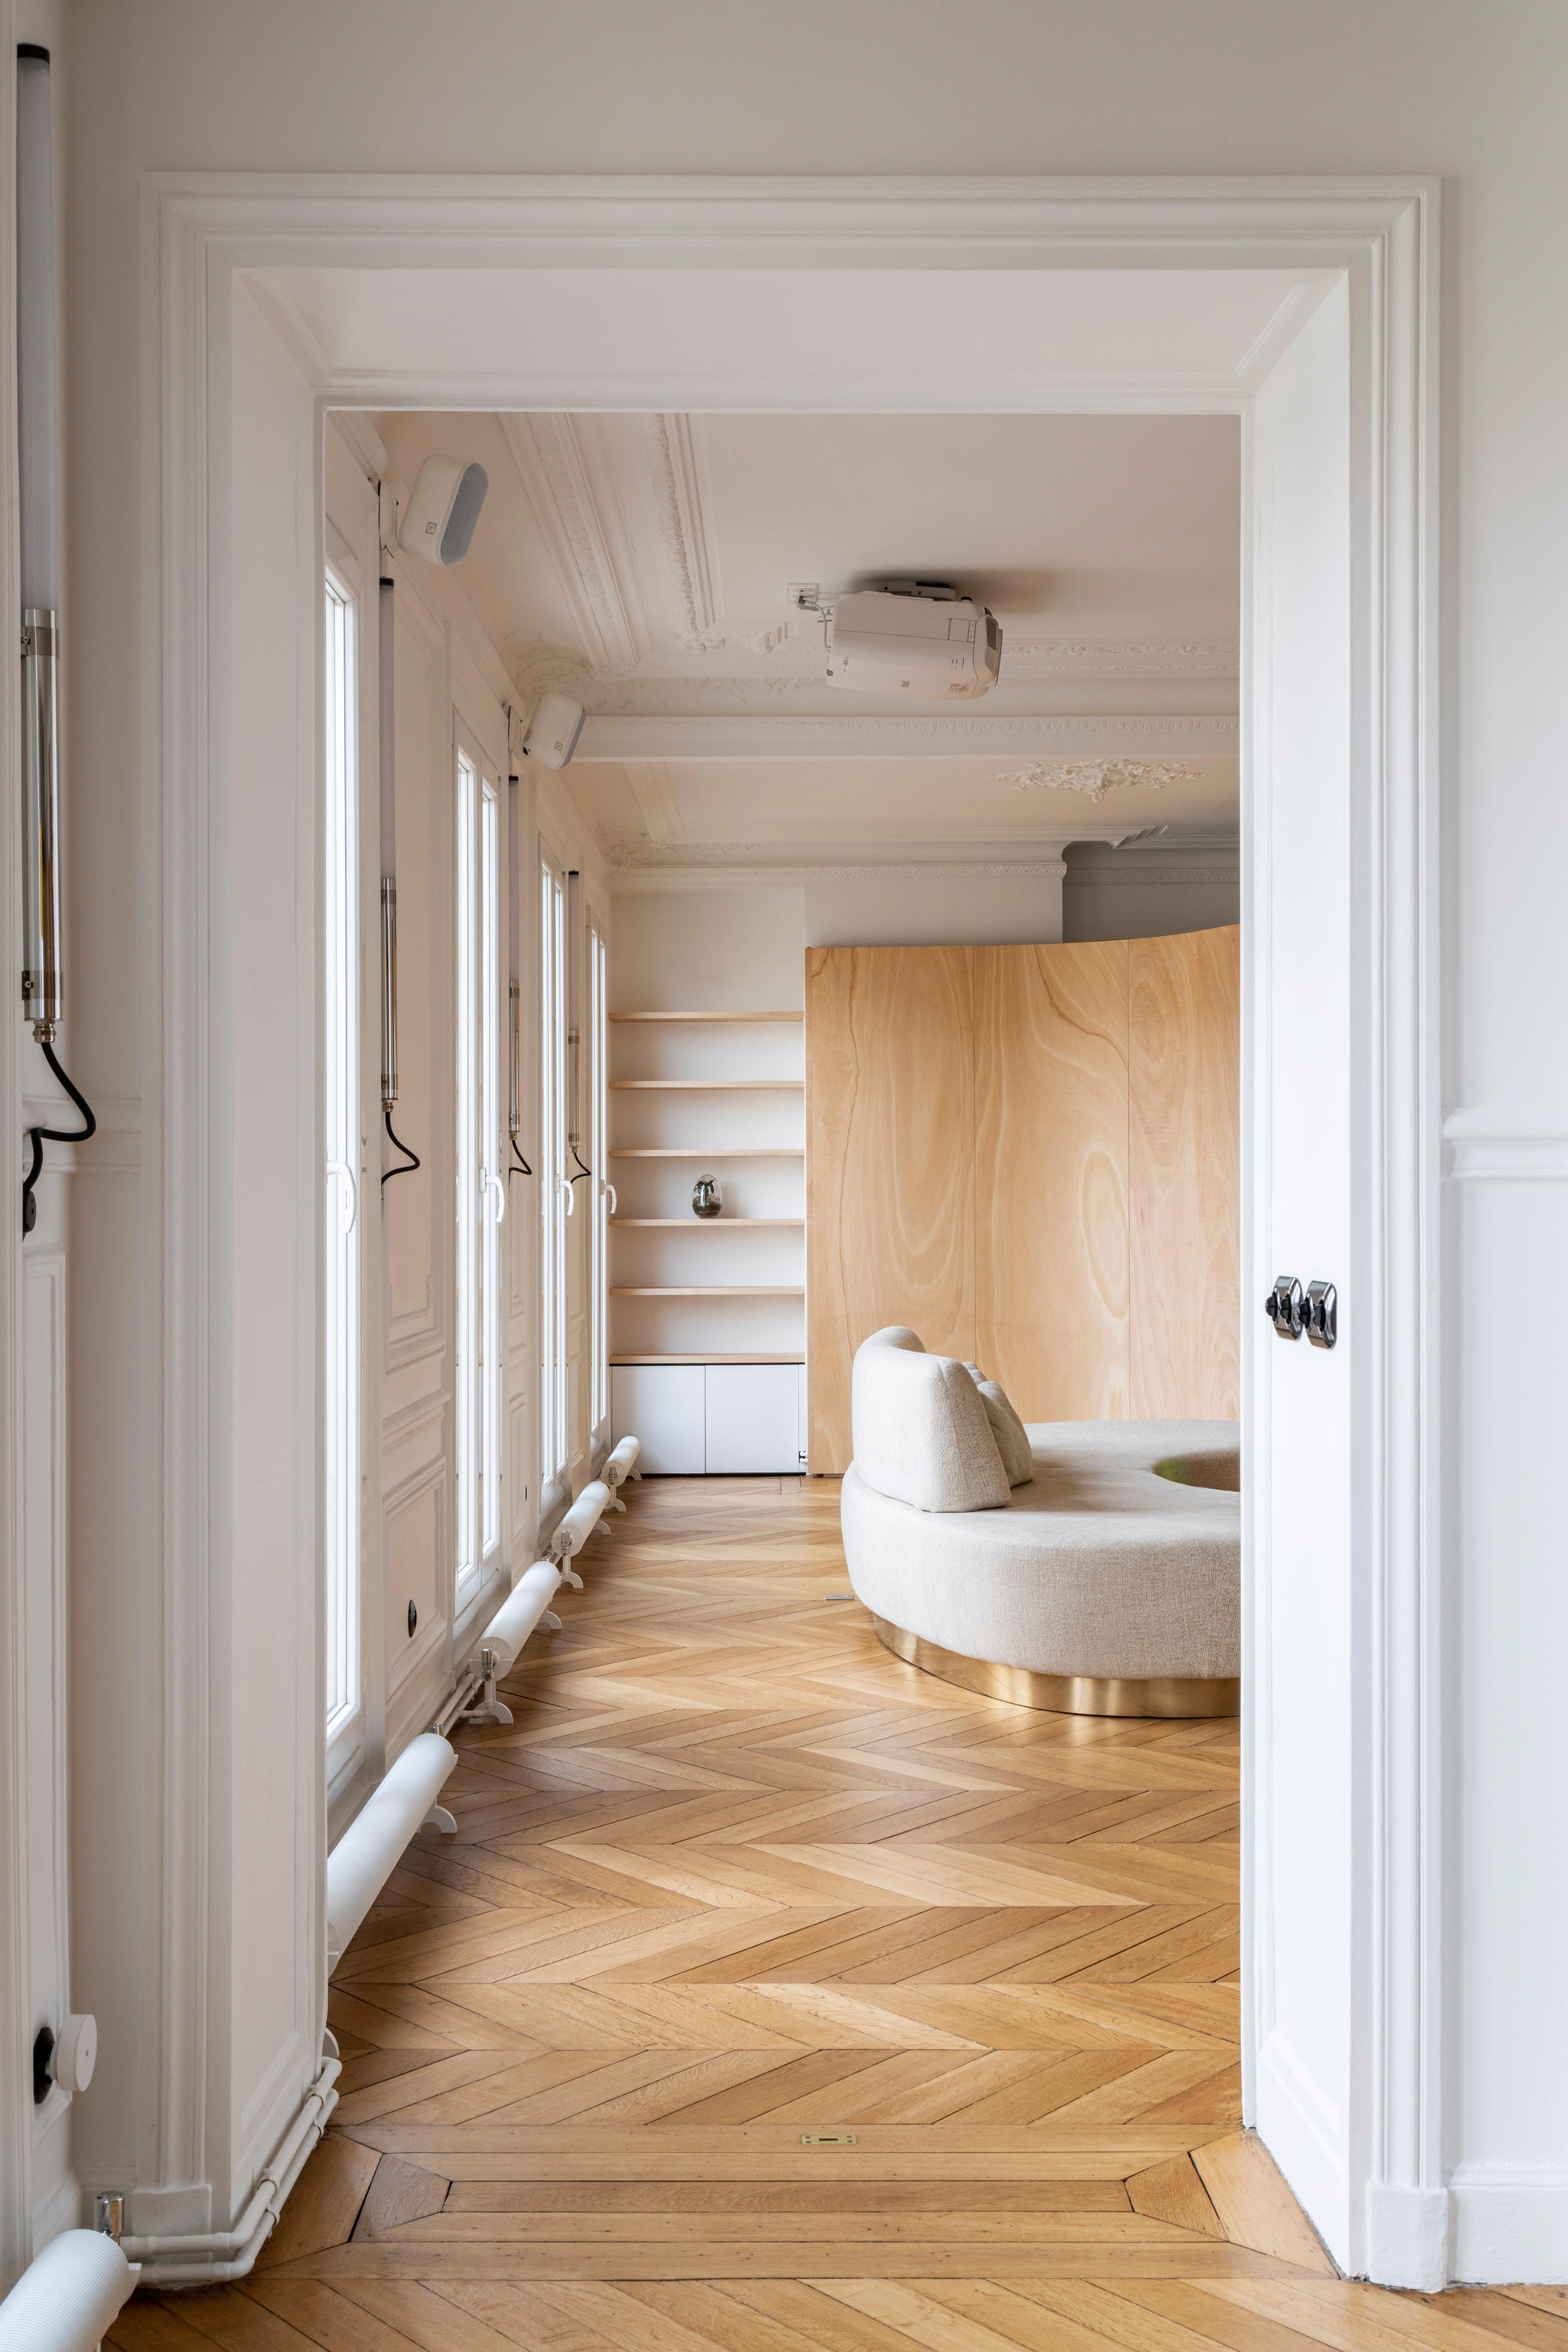 Wood Ribbon In Paris Apartment De Toledano Architects Espacios Habitables